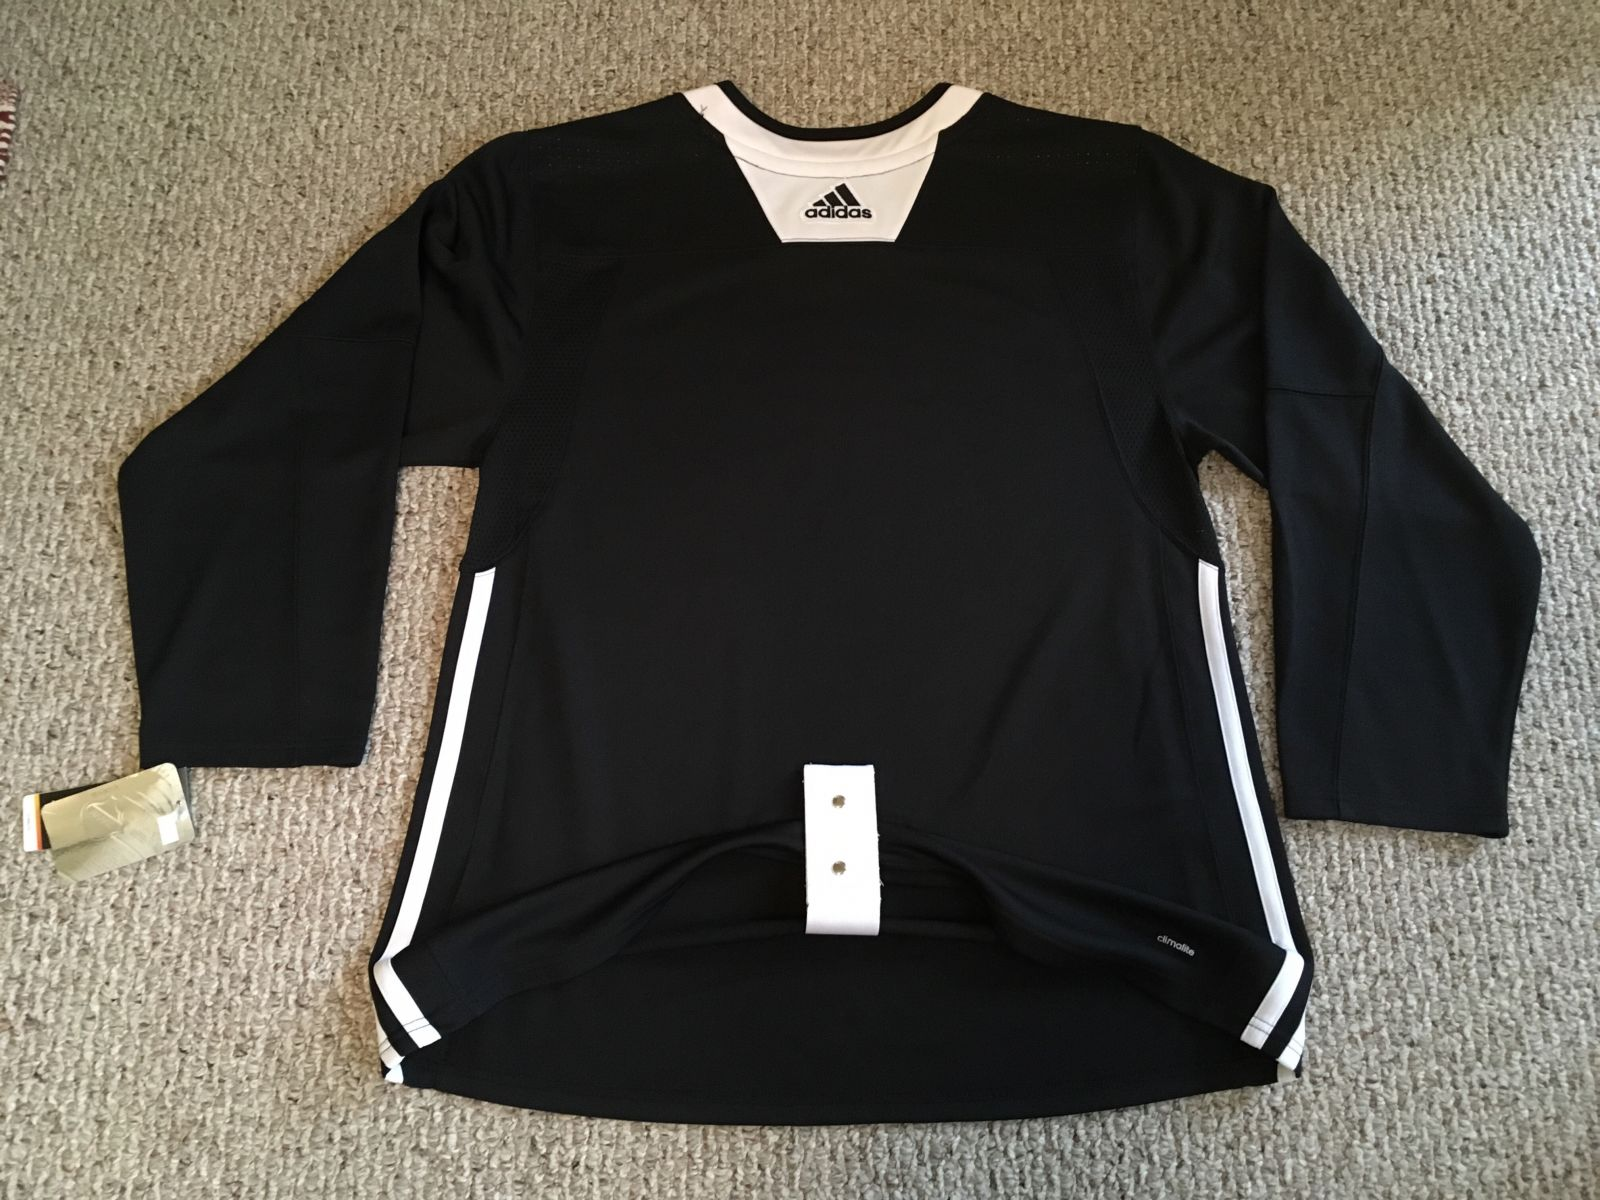 89b17e789 SOLD Adidas Penguins Practice Jersey Black -  60 Shipped - Jerseys ...